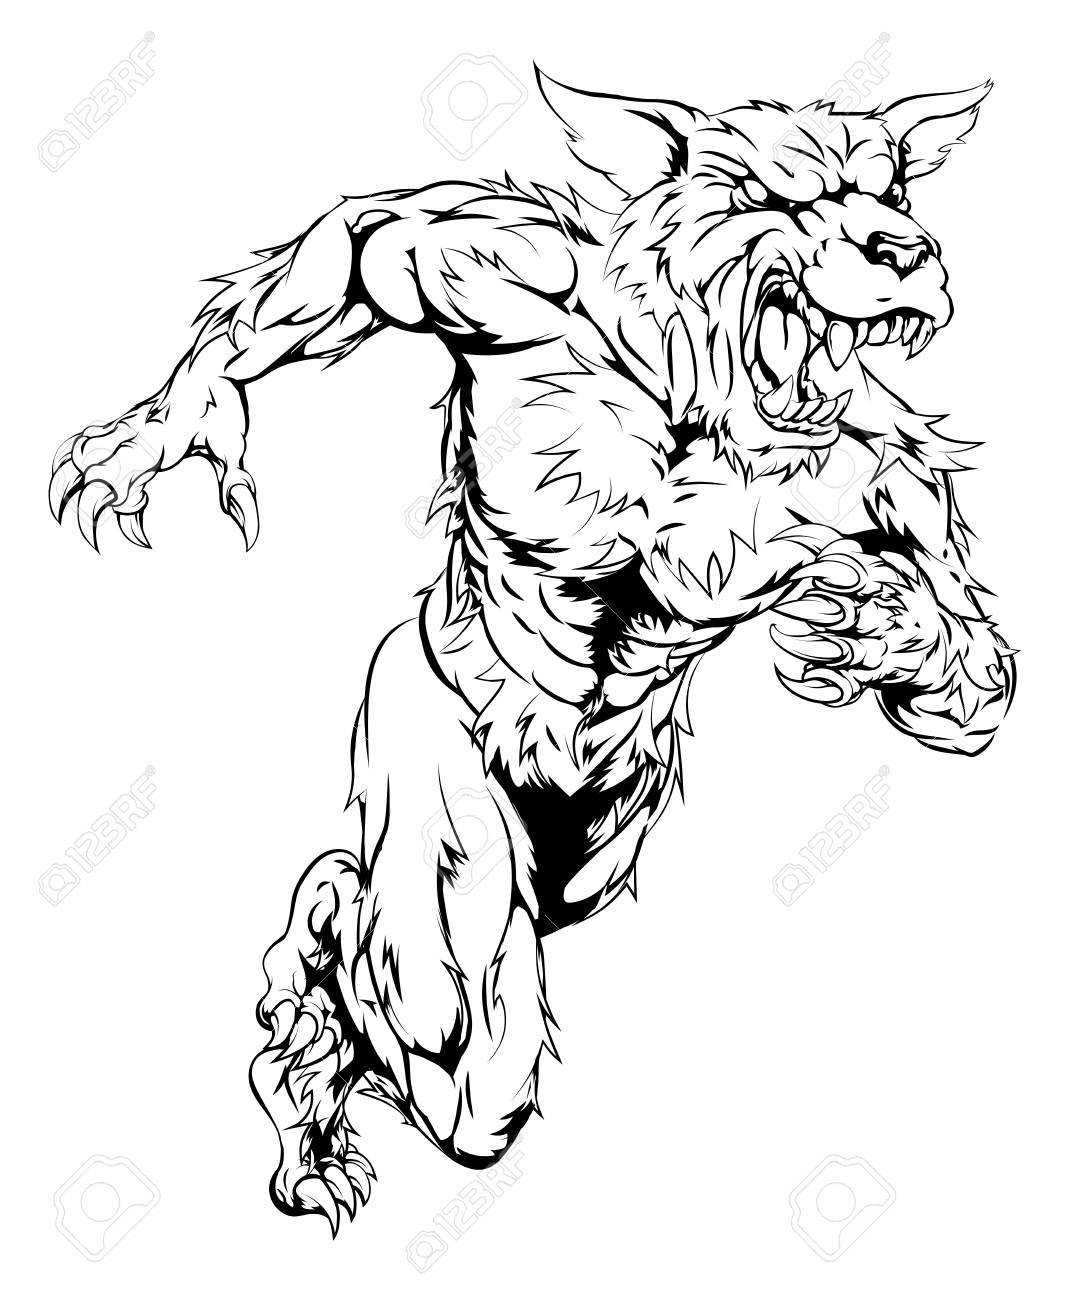 1070x1300 An Illustration Of A Sprinting Running Wolf Or Werewolf Character